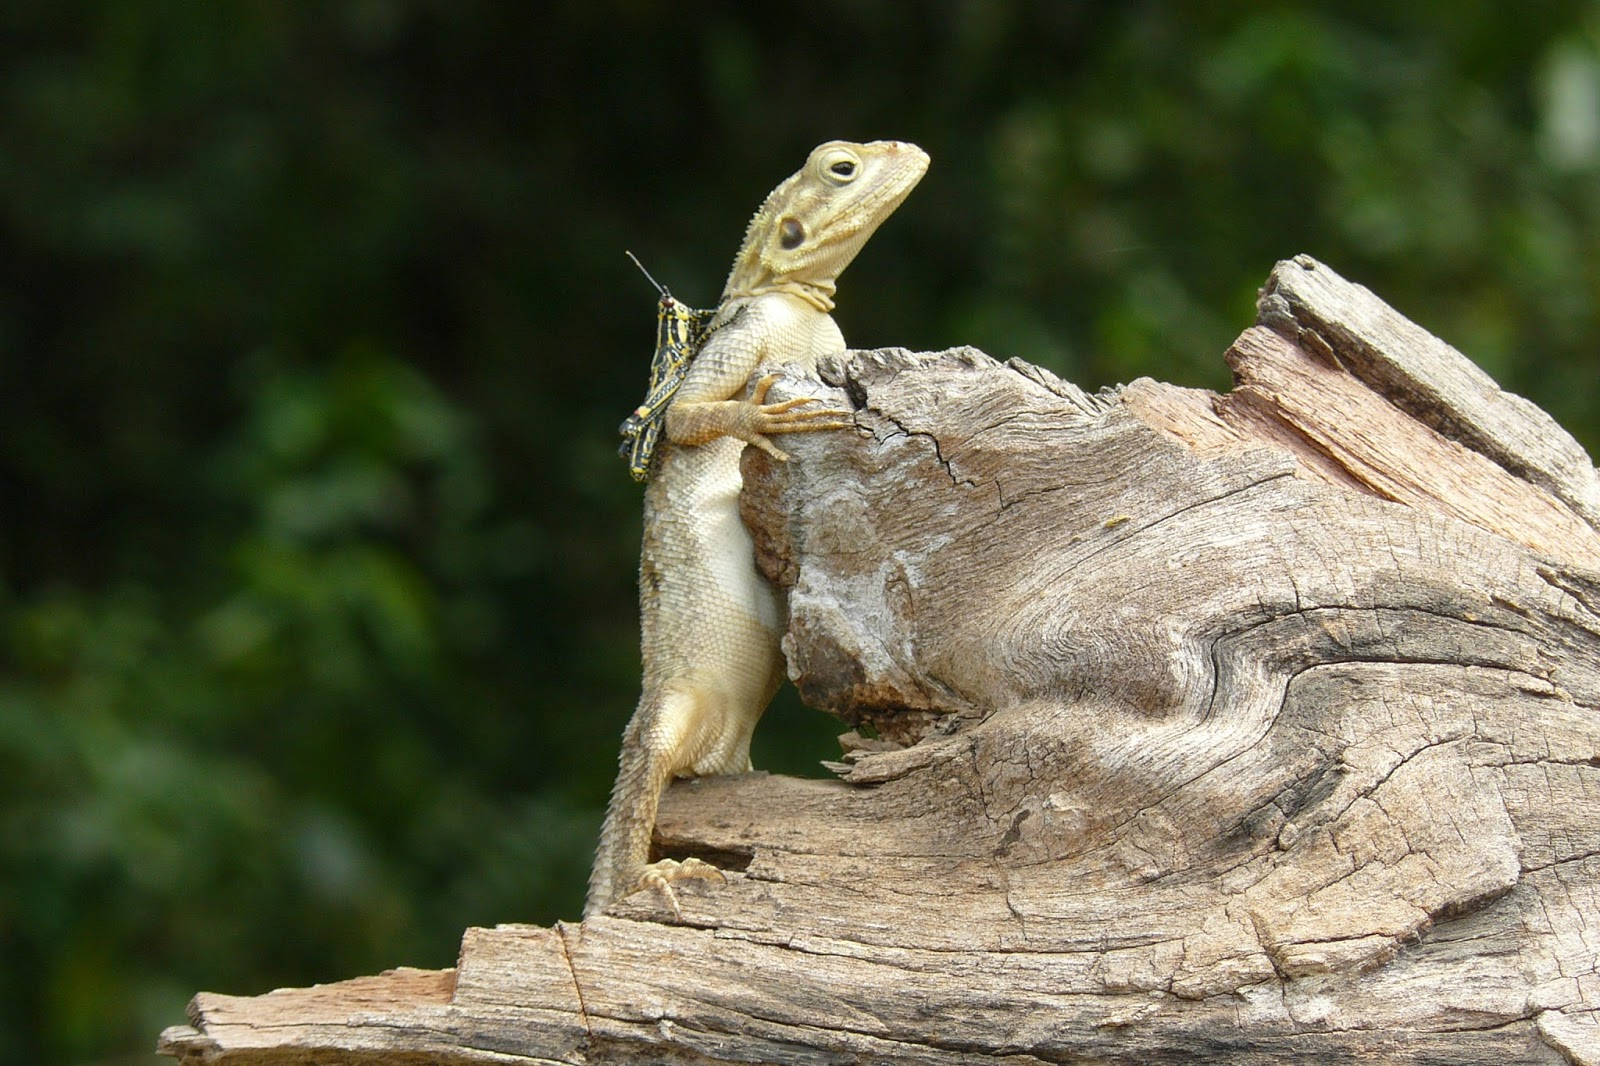 An amazing photo of a grasshopper on the back of a lizard.